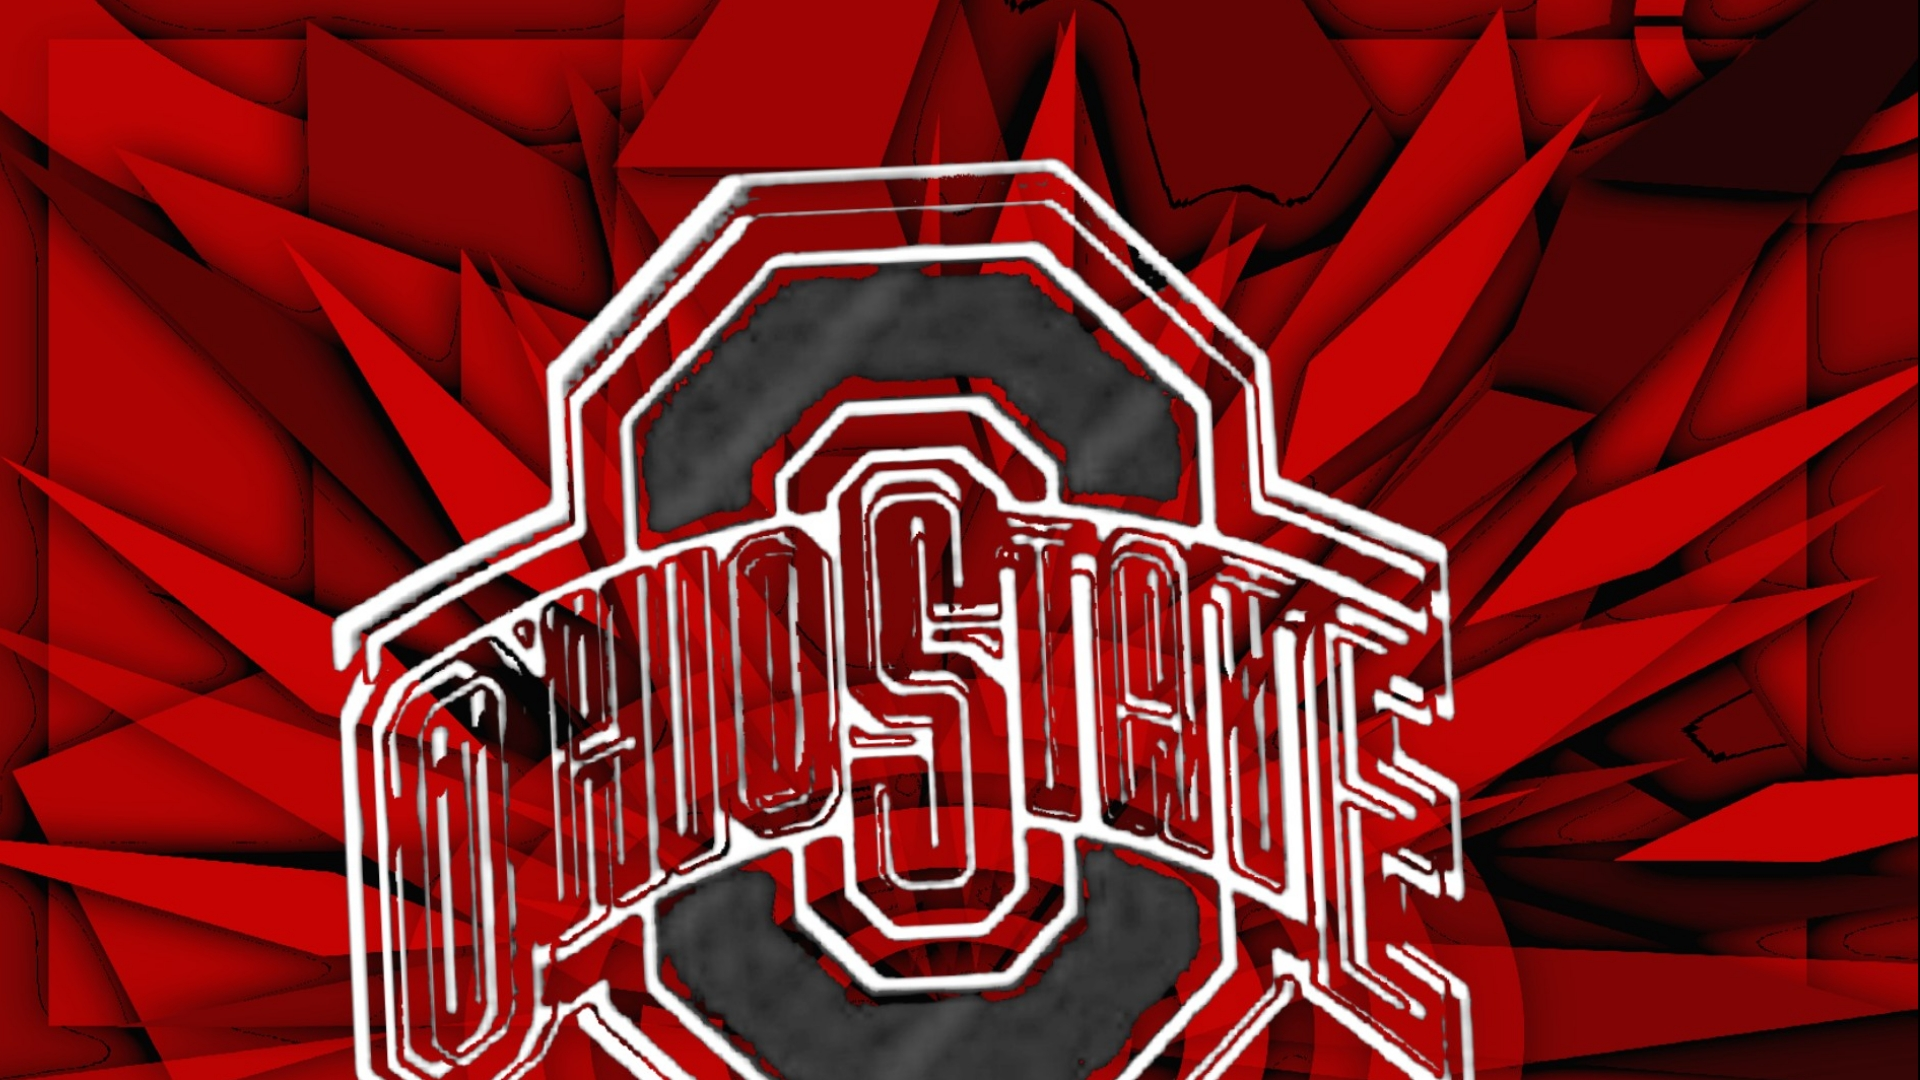 ohio state buckeyes images ohio state gray block o hd wallpaper and